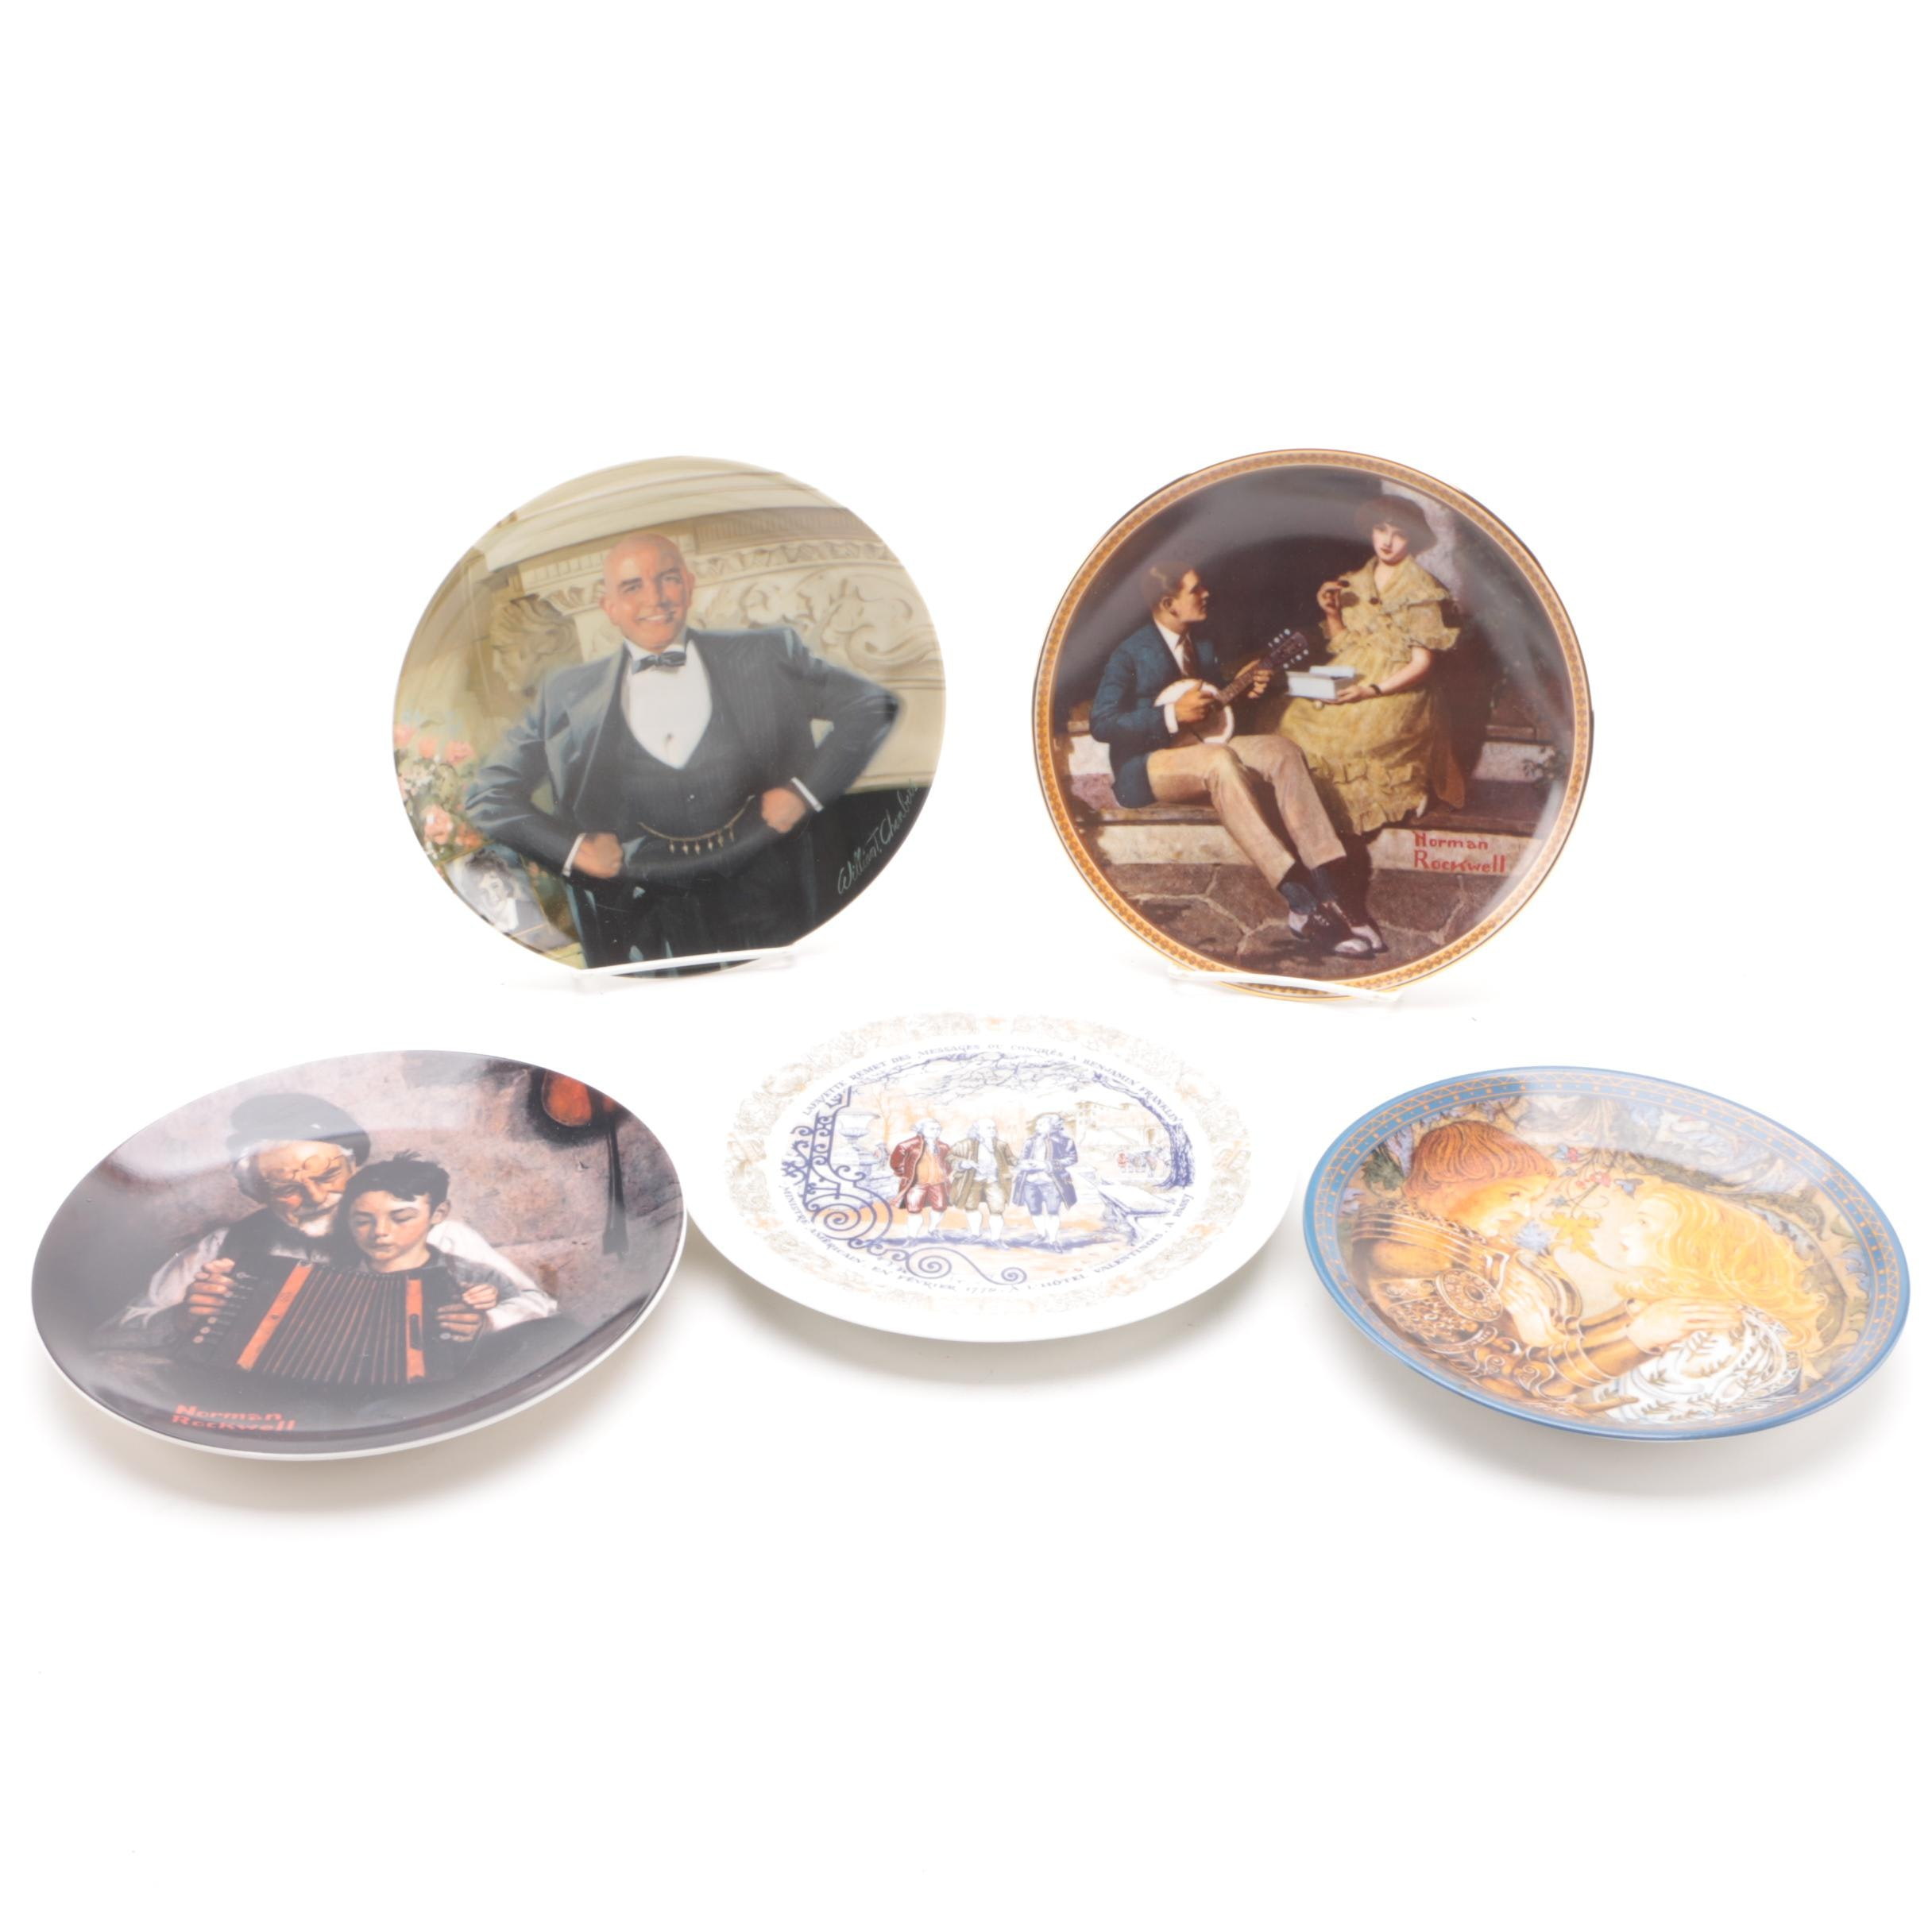 Collector's Plates Featuring Norman Rockwell